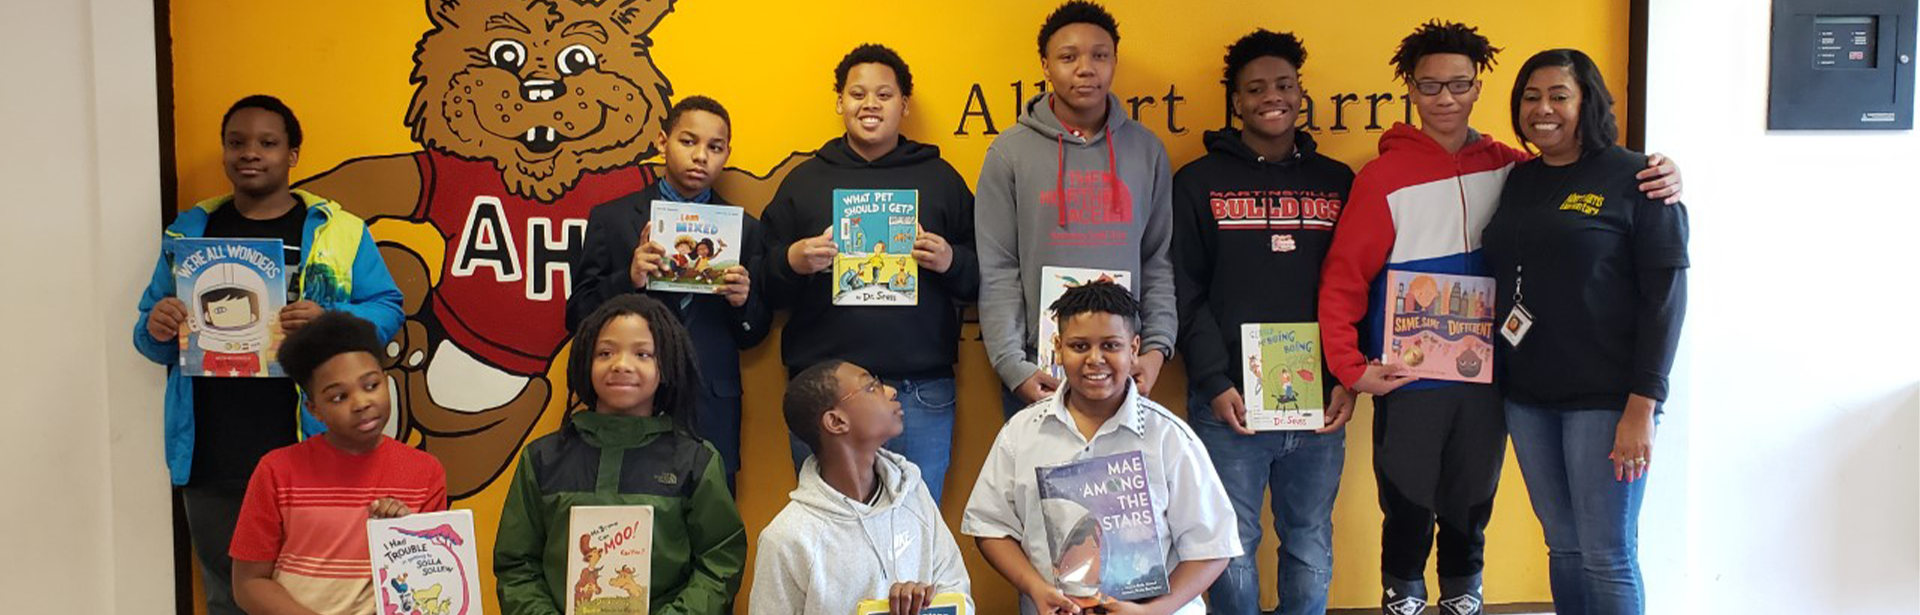 MMS SWAGGER members read to AHES students